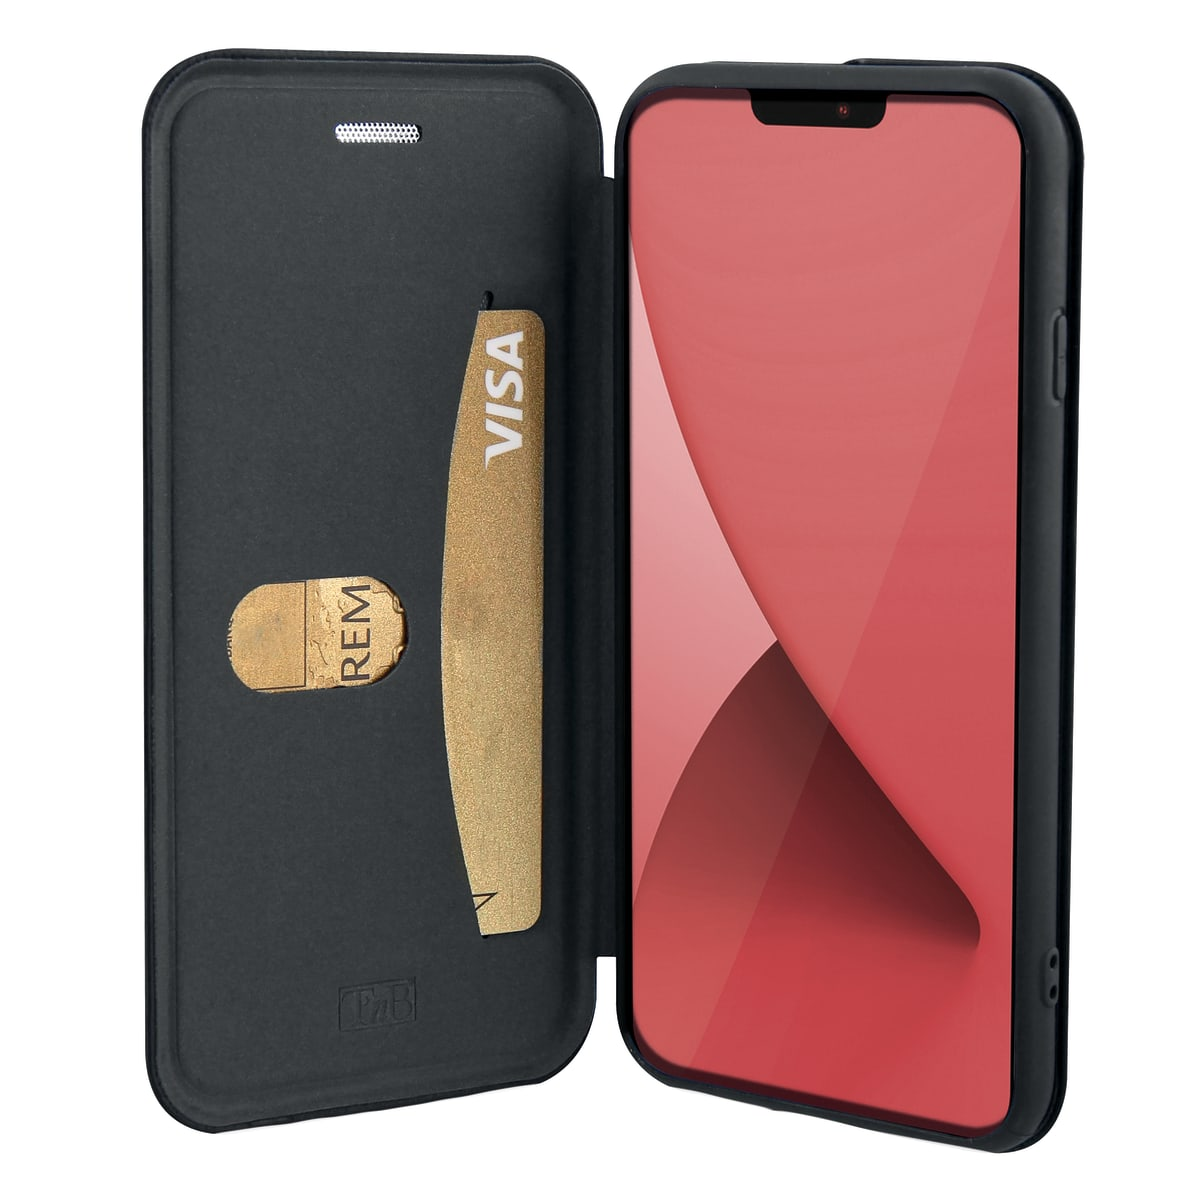 Premium folio case for iPhone 12 Pro Max.